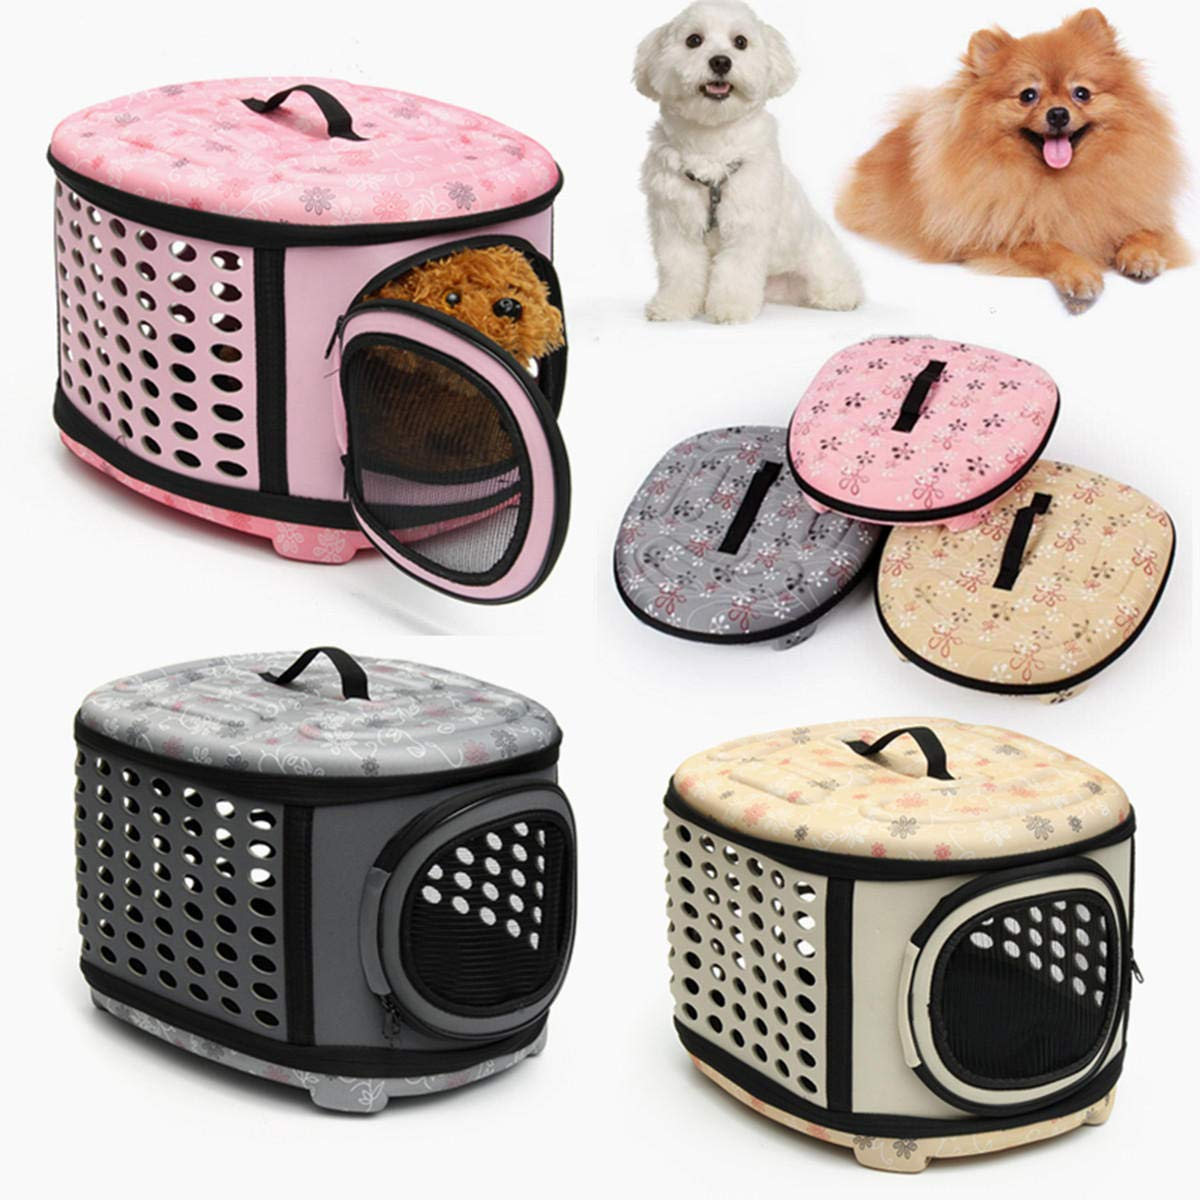 PINIX PNX Small Pet Dog Cat Puppy Kitten Carrier Portable Cage Crate Transporter Bag - rosa